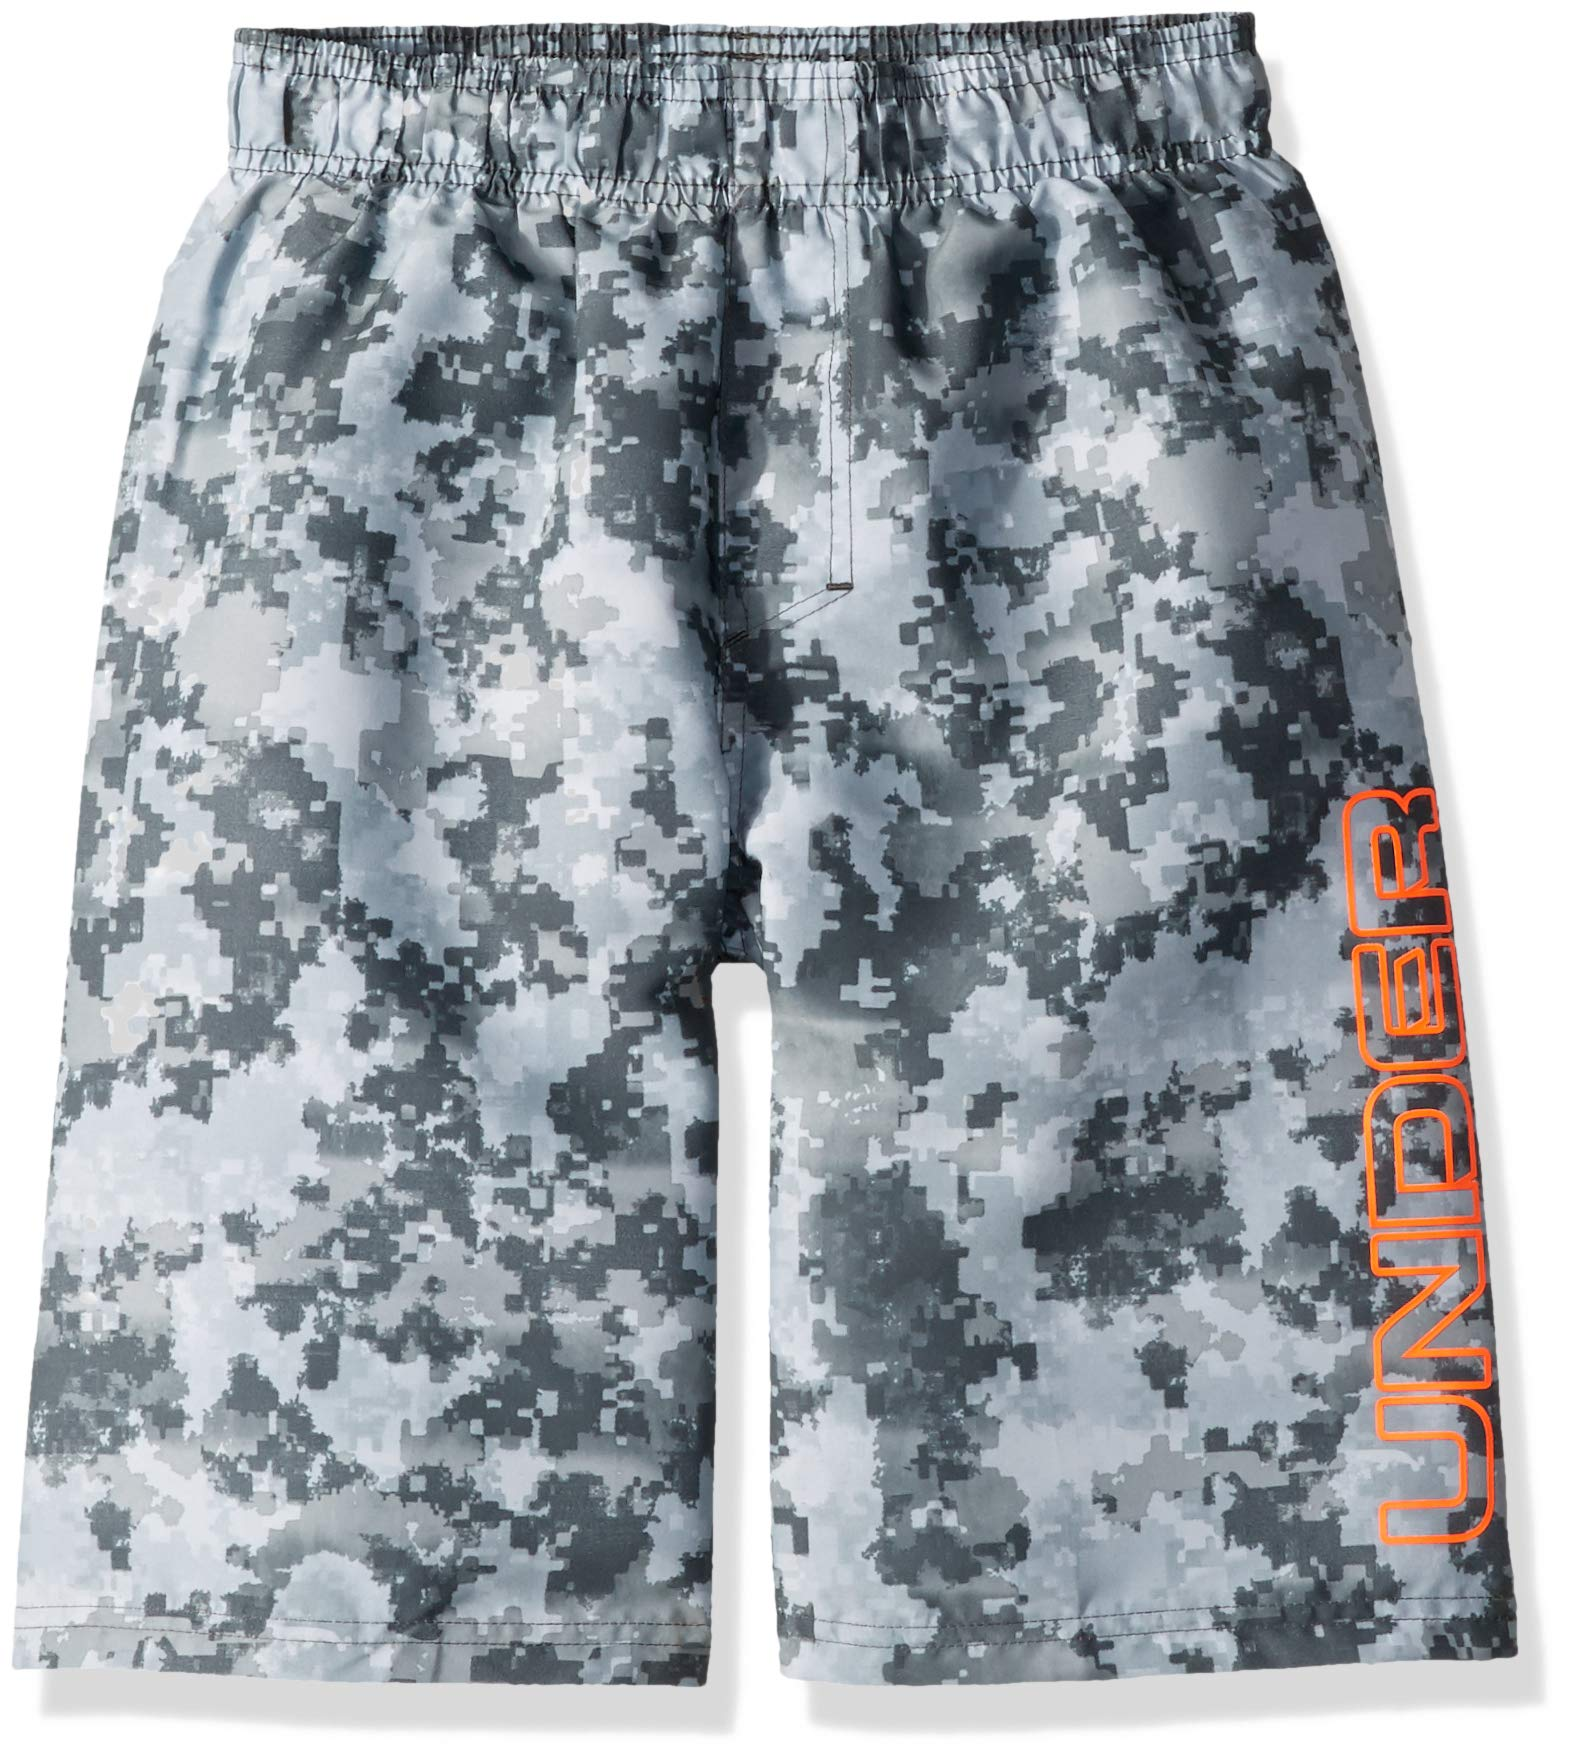 Under Armour Big Boys' Volley Fashion Swim Trunk, Moderate Gray-S19, YSM